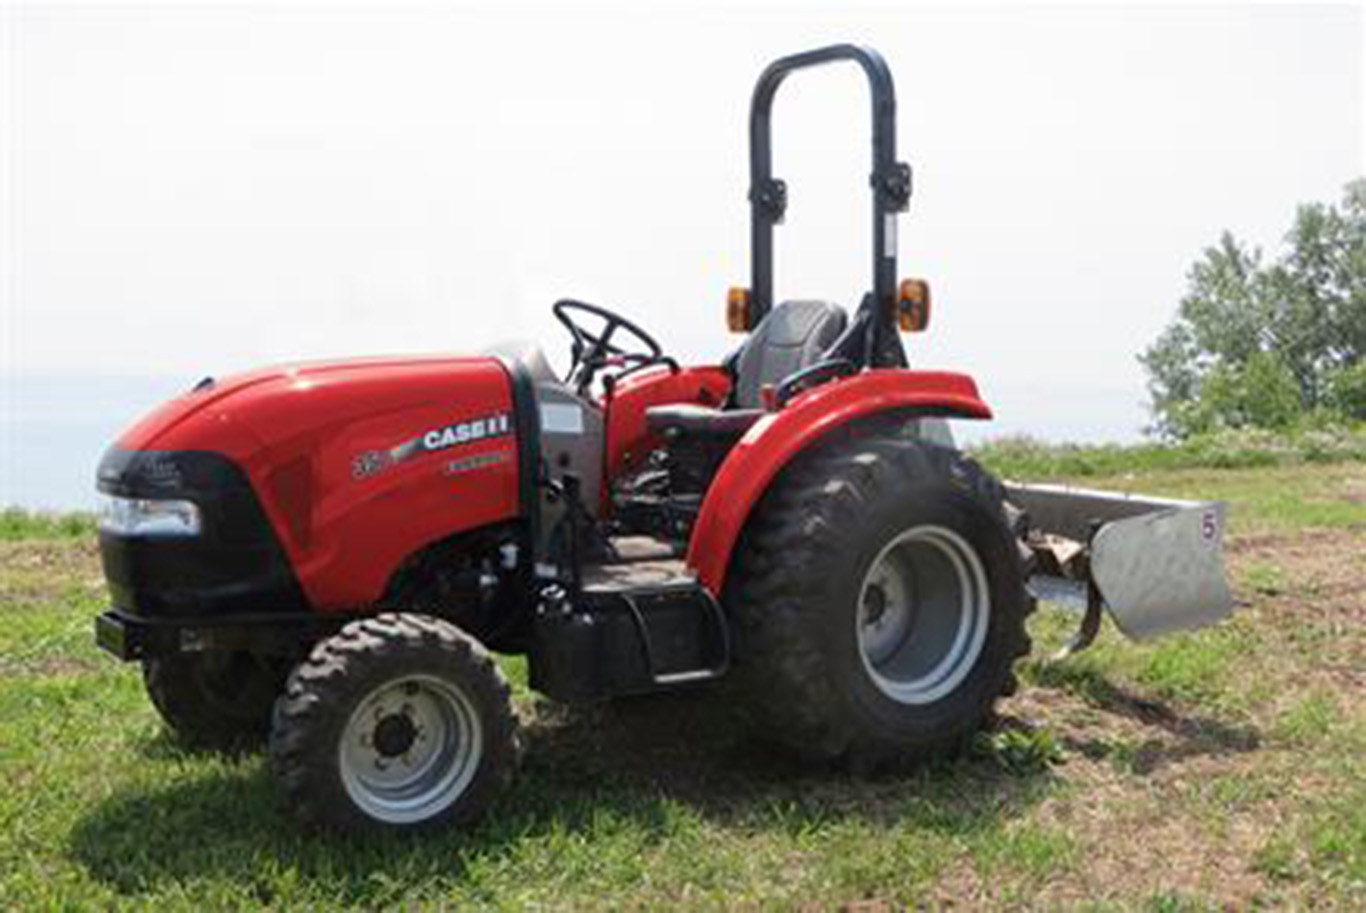 Compact Tractors Product : Compact tractor product spotlight farmers hot line